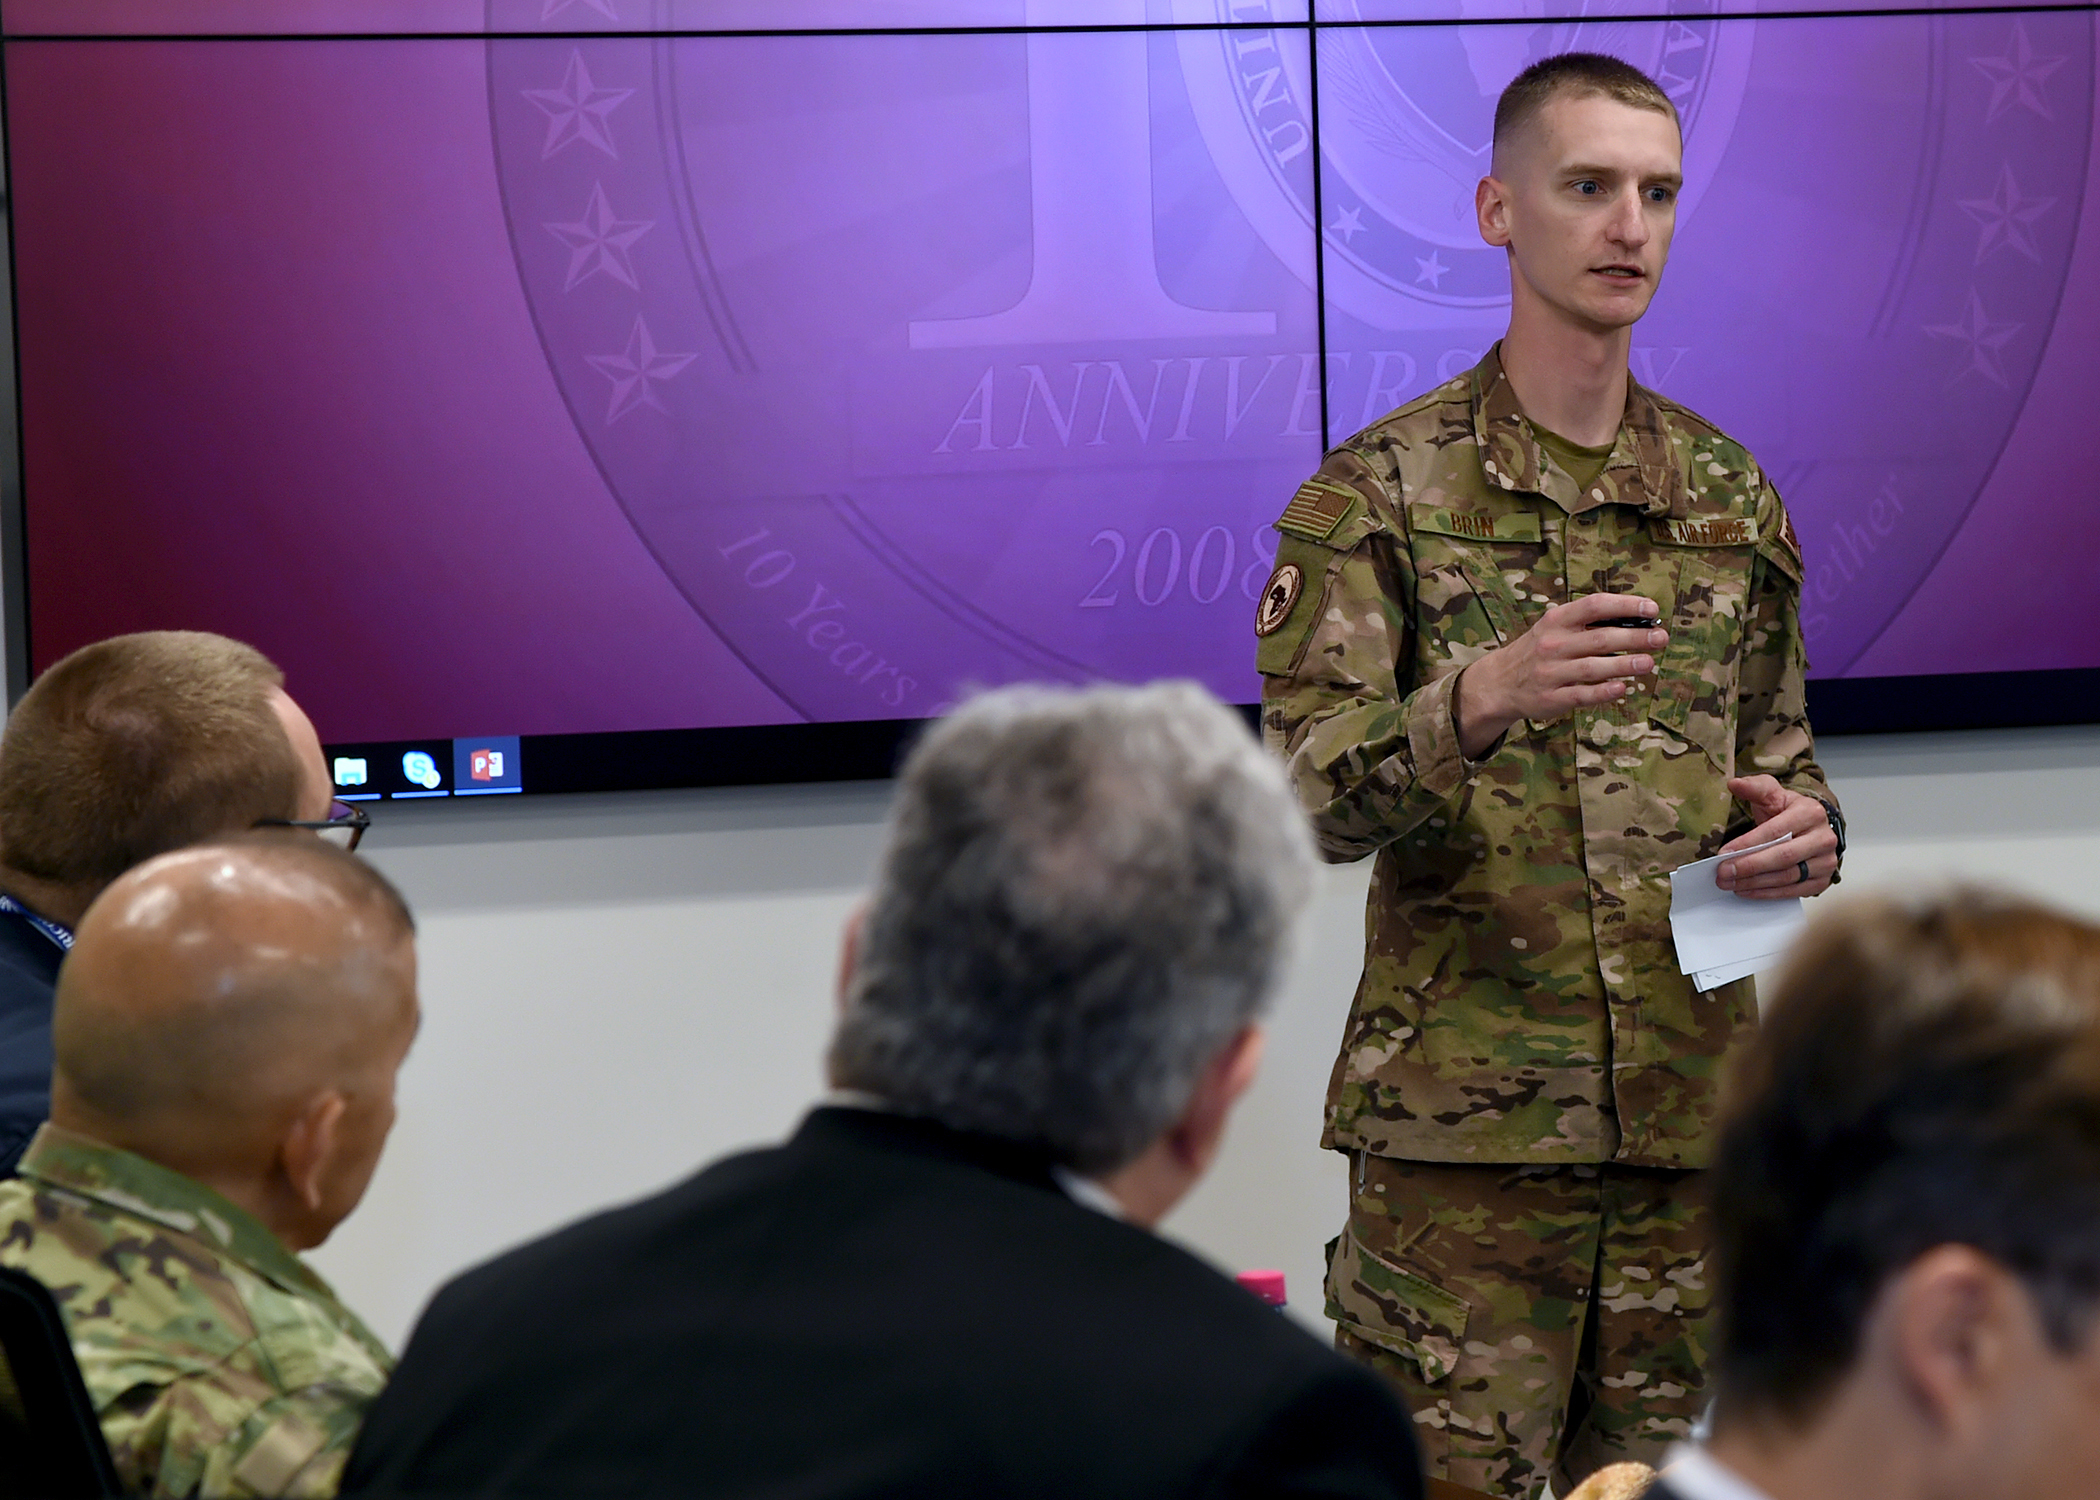 U.S. Air Force Capt. Tyler Brin, director of protocol for Combined Joint Task Force-Horn of Africa (CJTF-HOA), addresses U.S. diplomats and joint service personnel at a meeting during the East Africa Security Forum (EASF) at Camp Lemonnier, Djibouti, Dec. 13, 2018. The EASF provides opportunities for CJTF-HOA and interagency leaders to assess and align efforts, and develop synchronized courses of action that support common goals. (U.S. Navy photo by Mass Communication Specialist 1st Class Nick Scott)